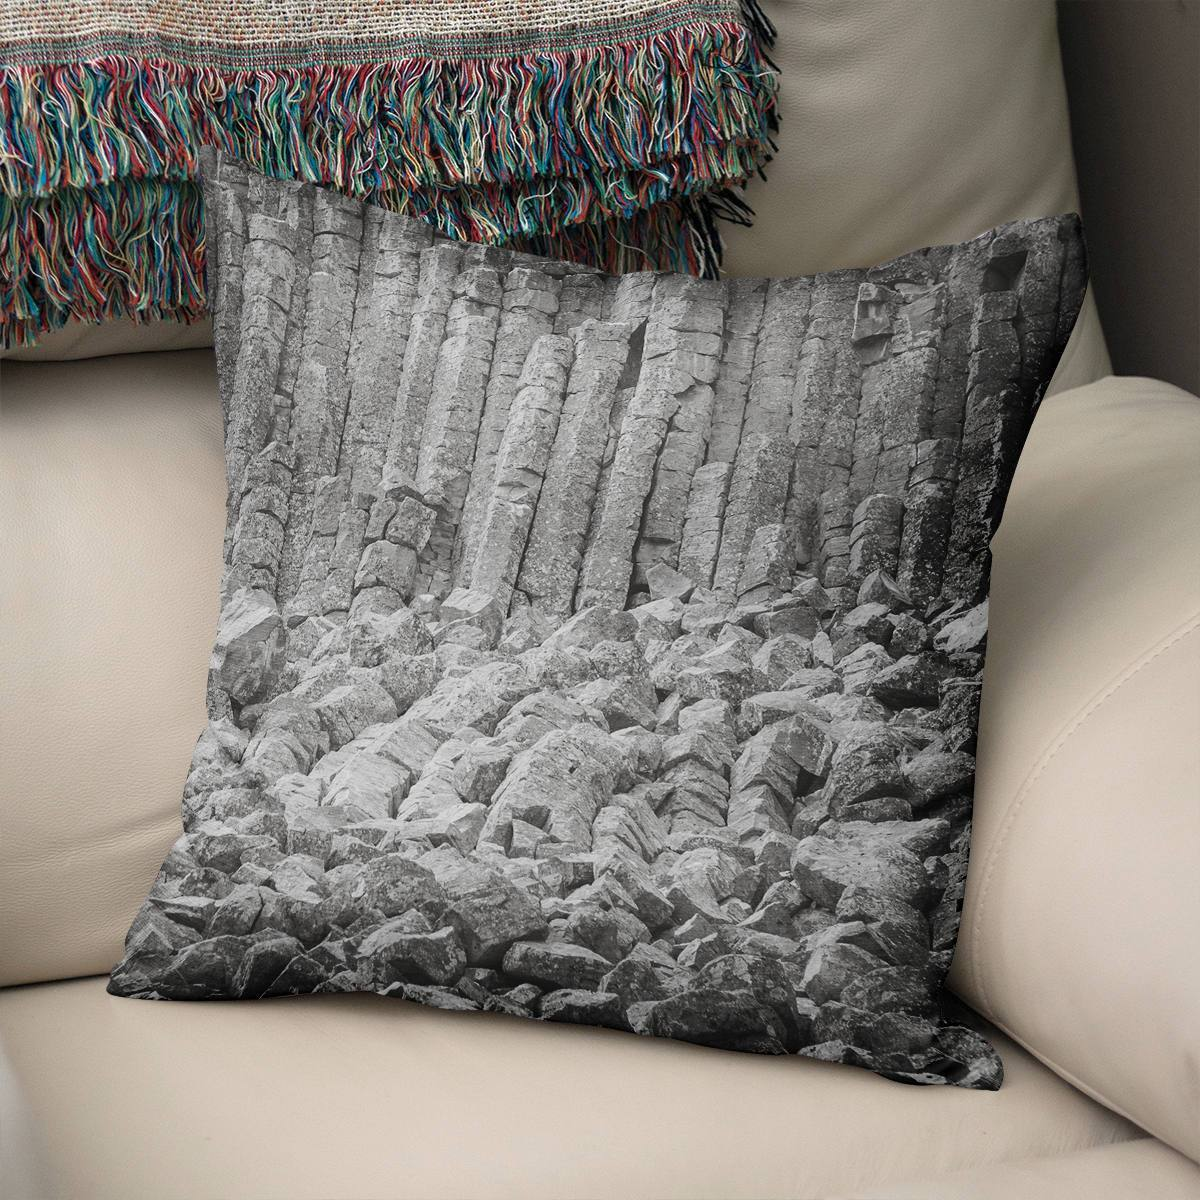 Basalt Columns Black and White Throw Pillow Cover Lost in Nature